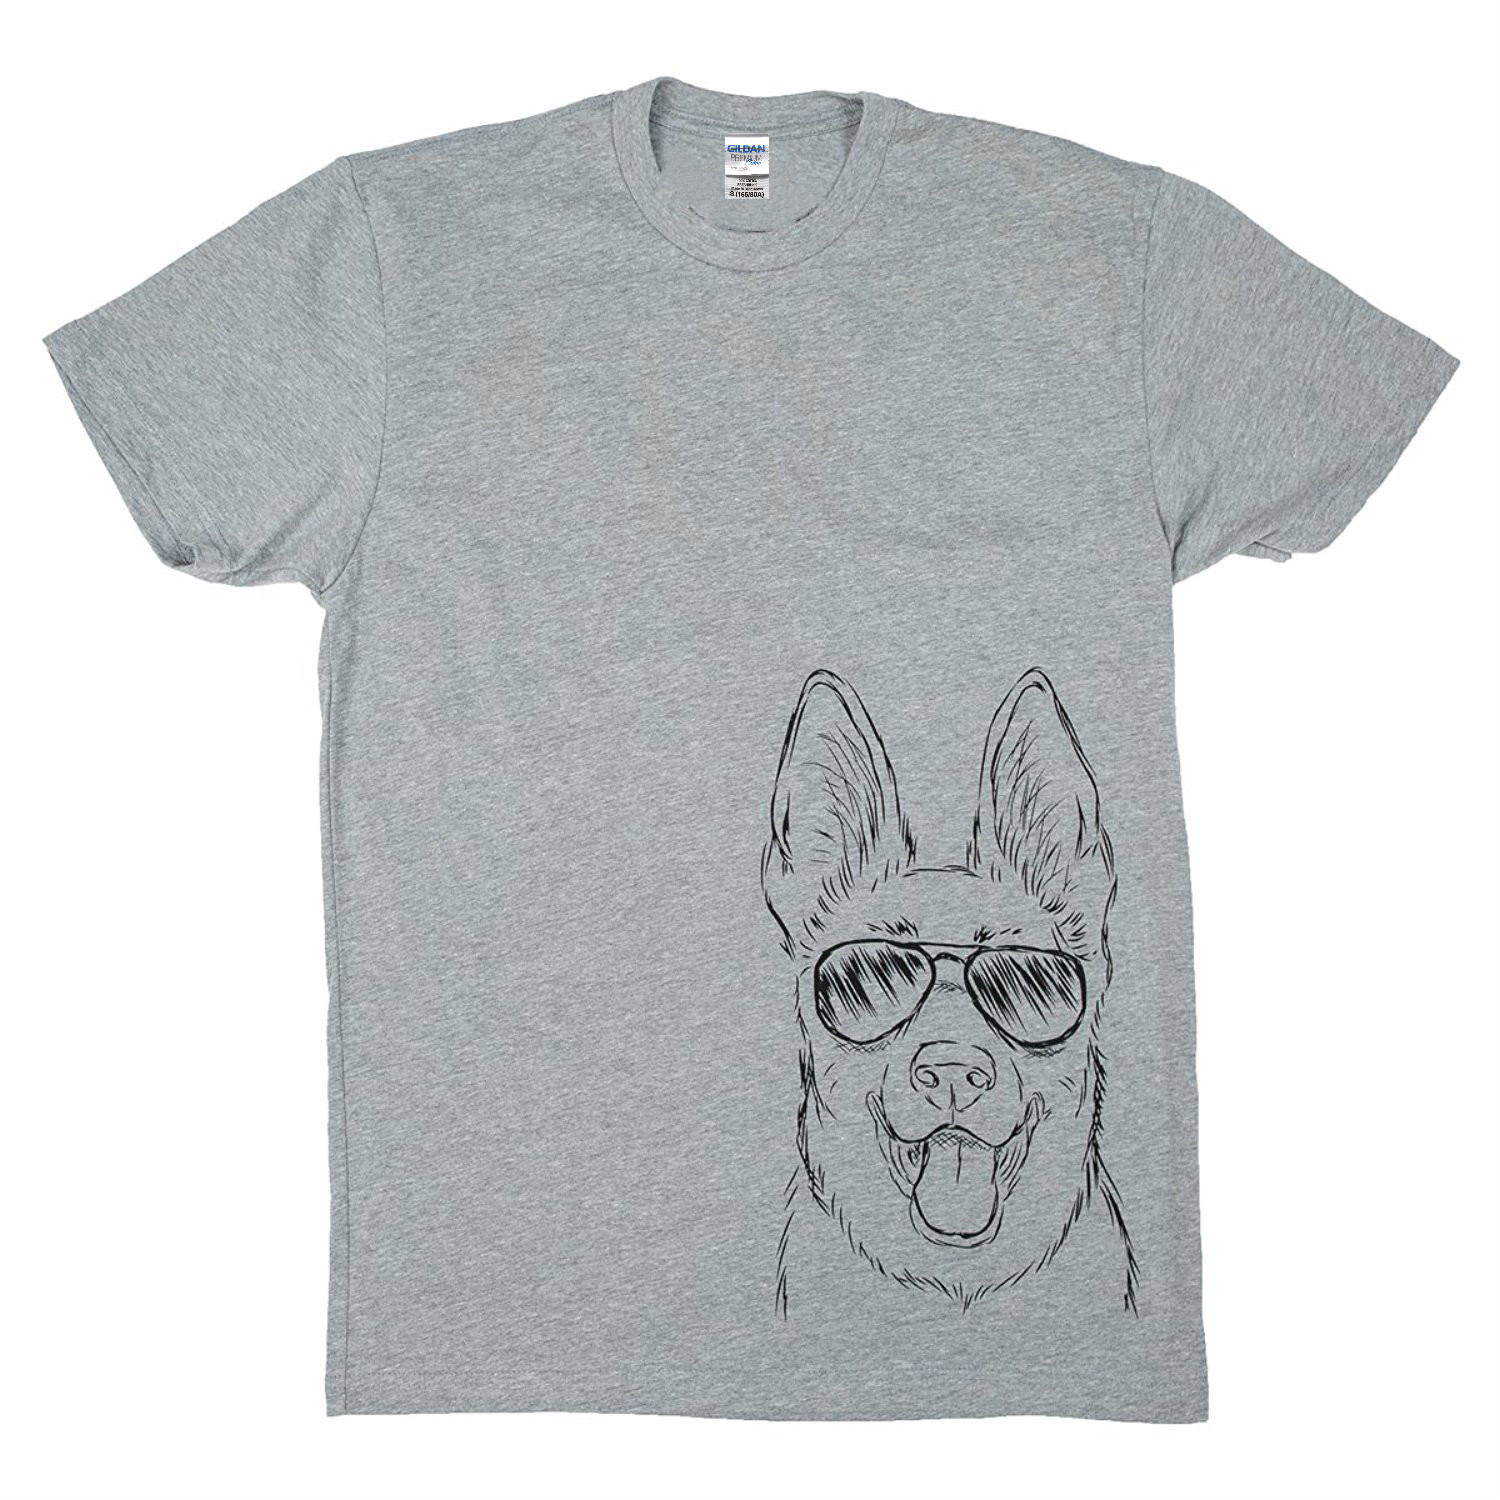 Design t shirt online uk - Design T Shirt Men S High Quality Inkopious Men S German Shepherd With Sunglasses T Shirt